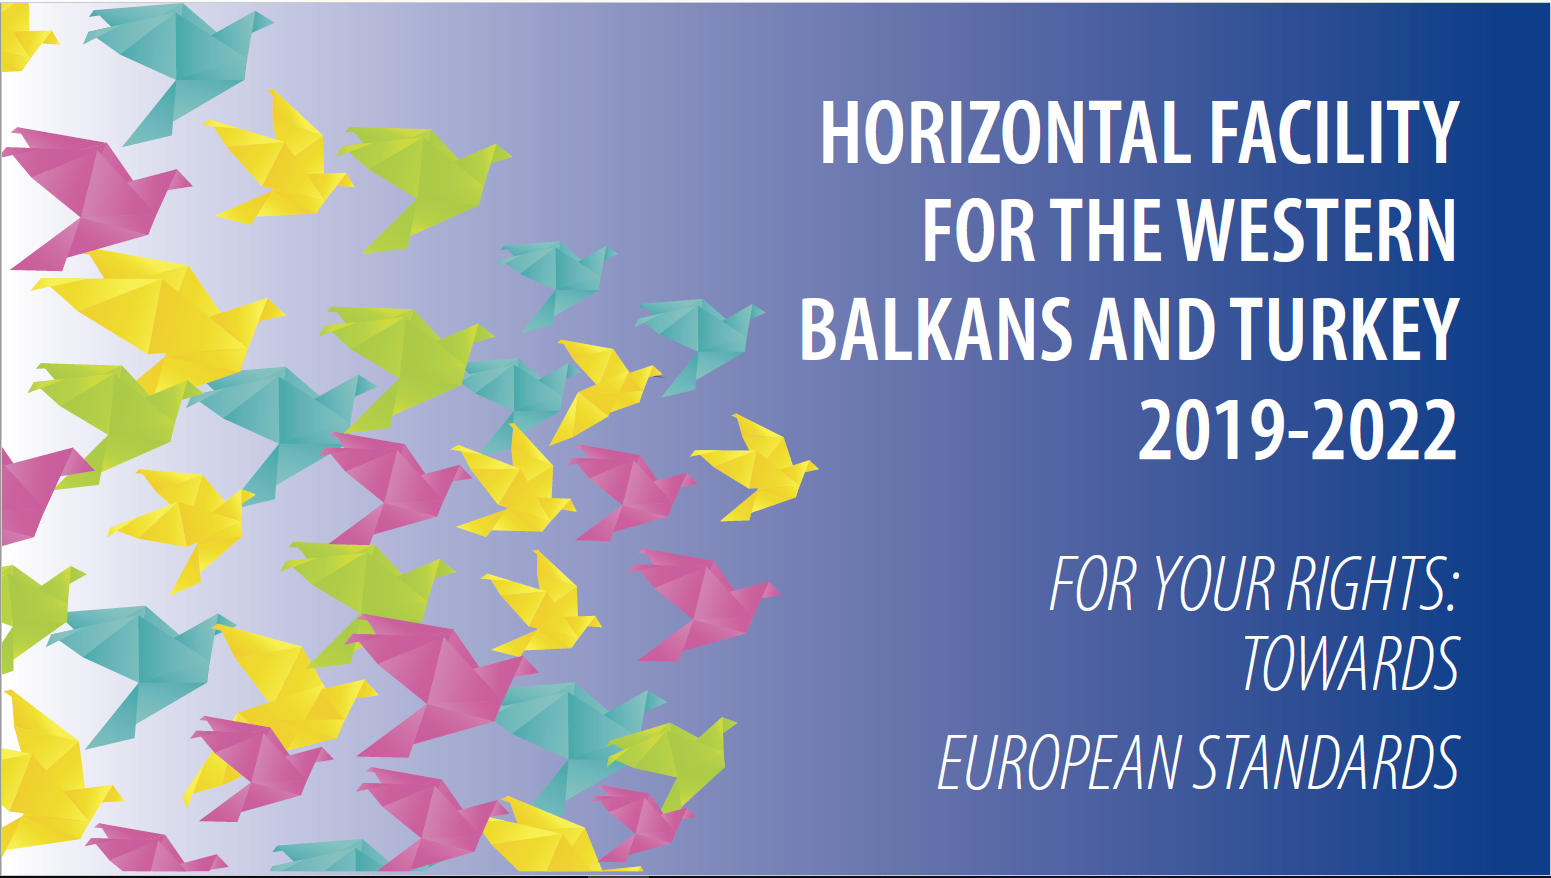 Horizontal Facility for the Western Balkans and Turkey (2019 - 2022)